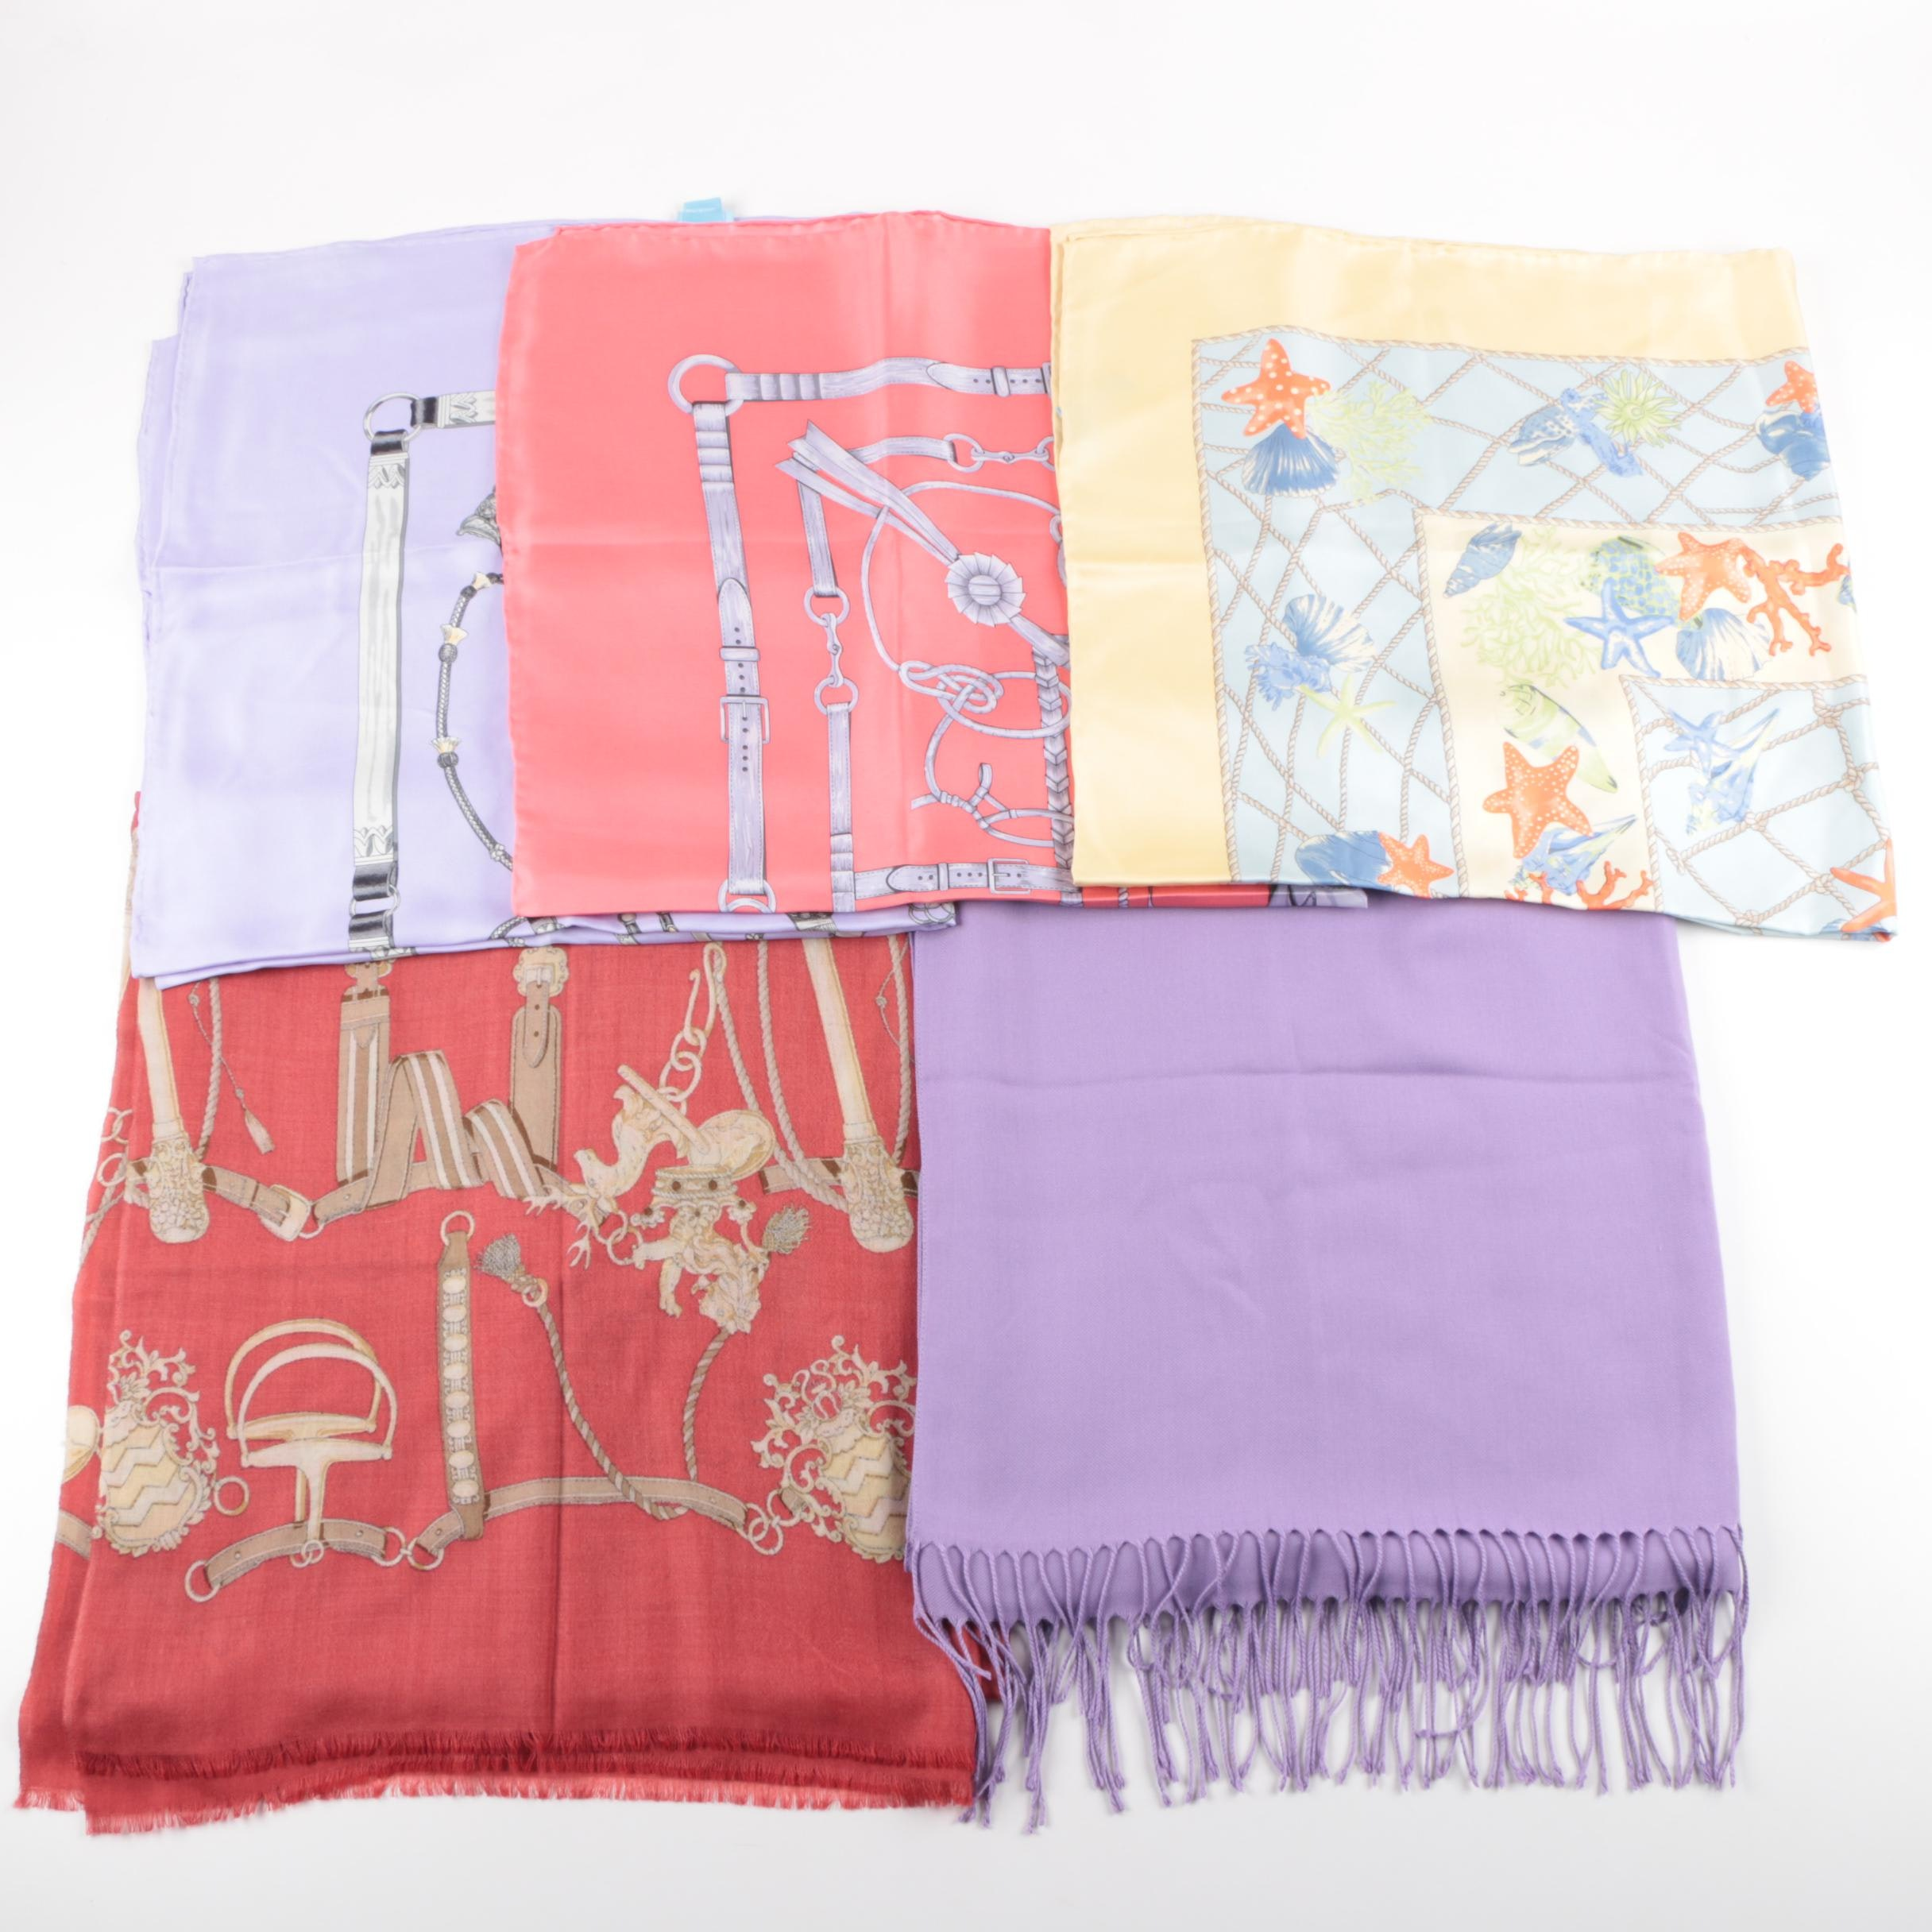 J.Mclaughlin Silk and Wool Scarves